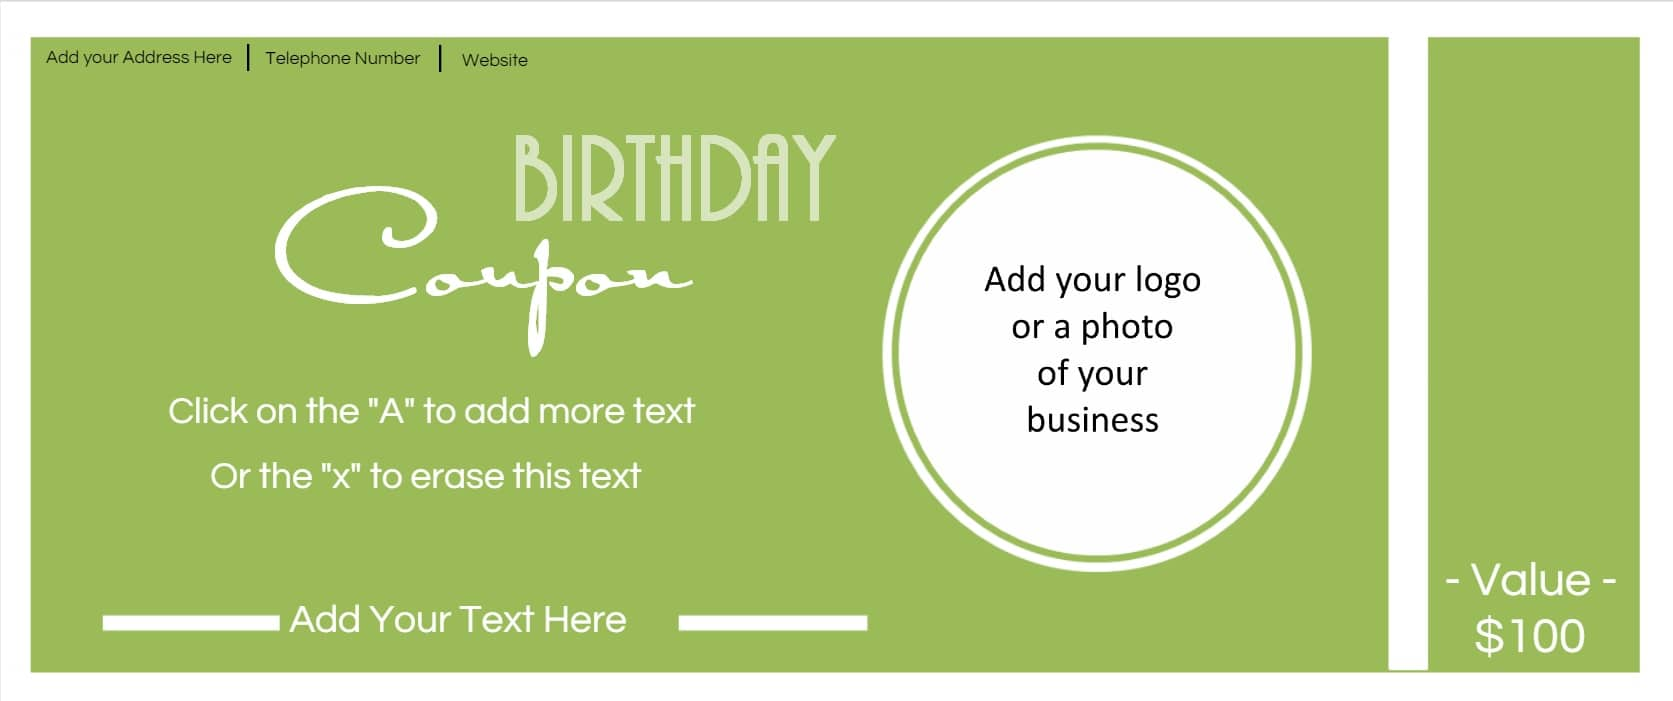 birthday coupon template ; birthday-coupons-10